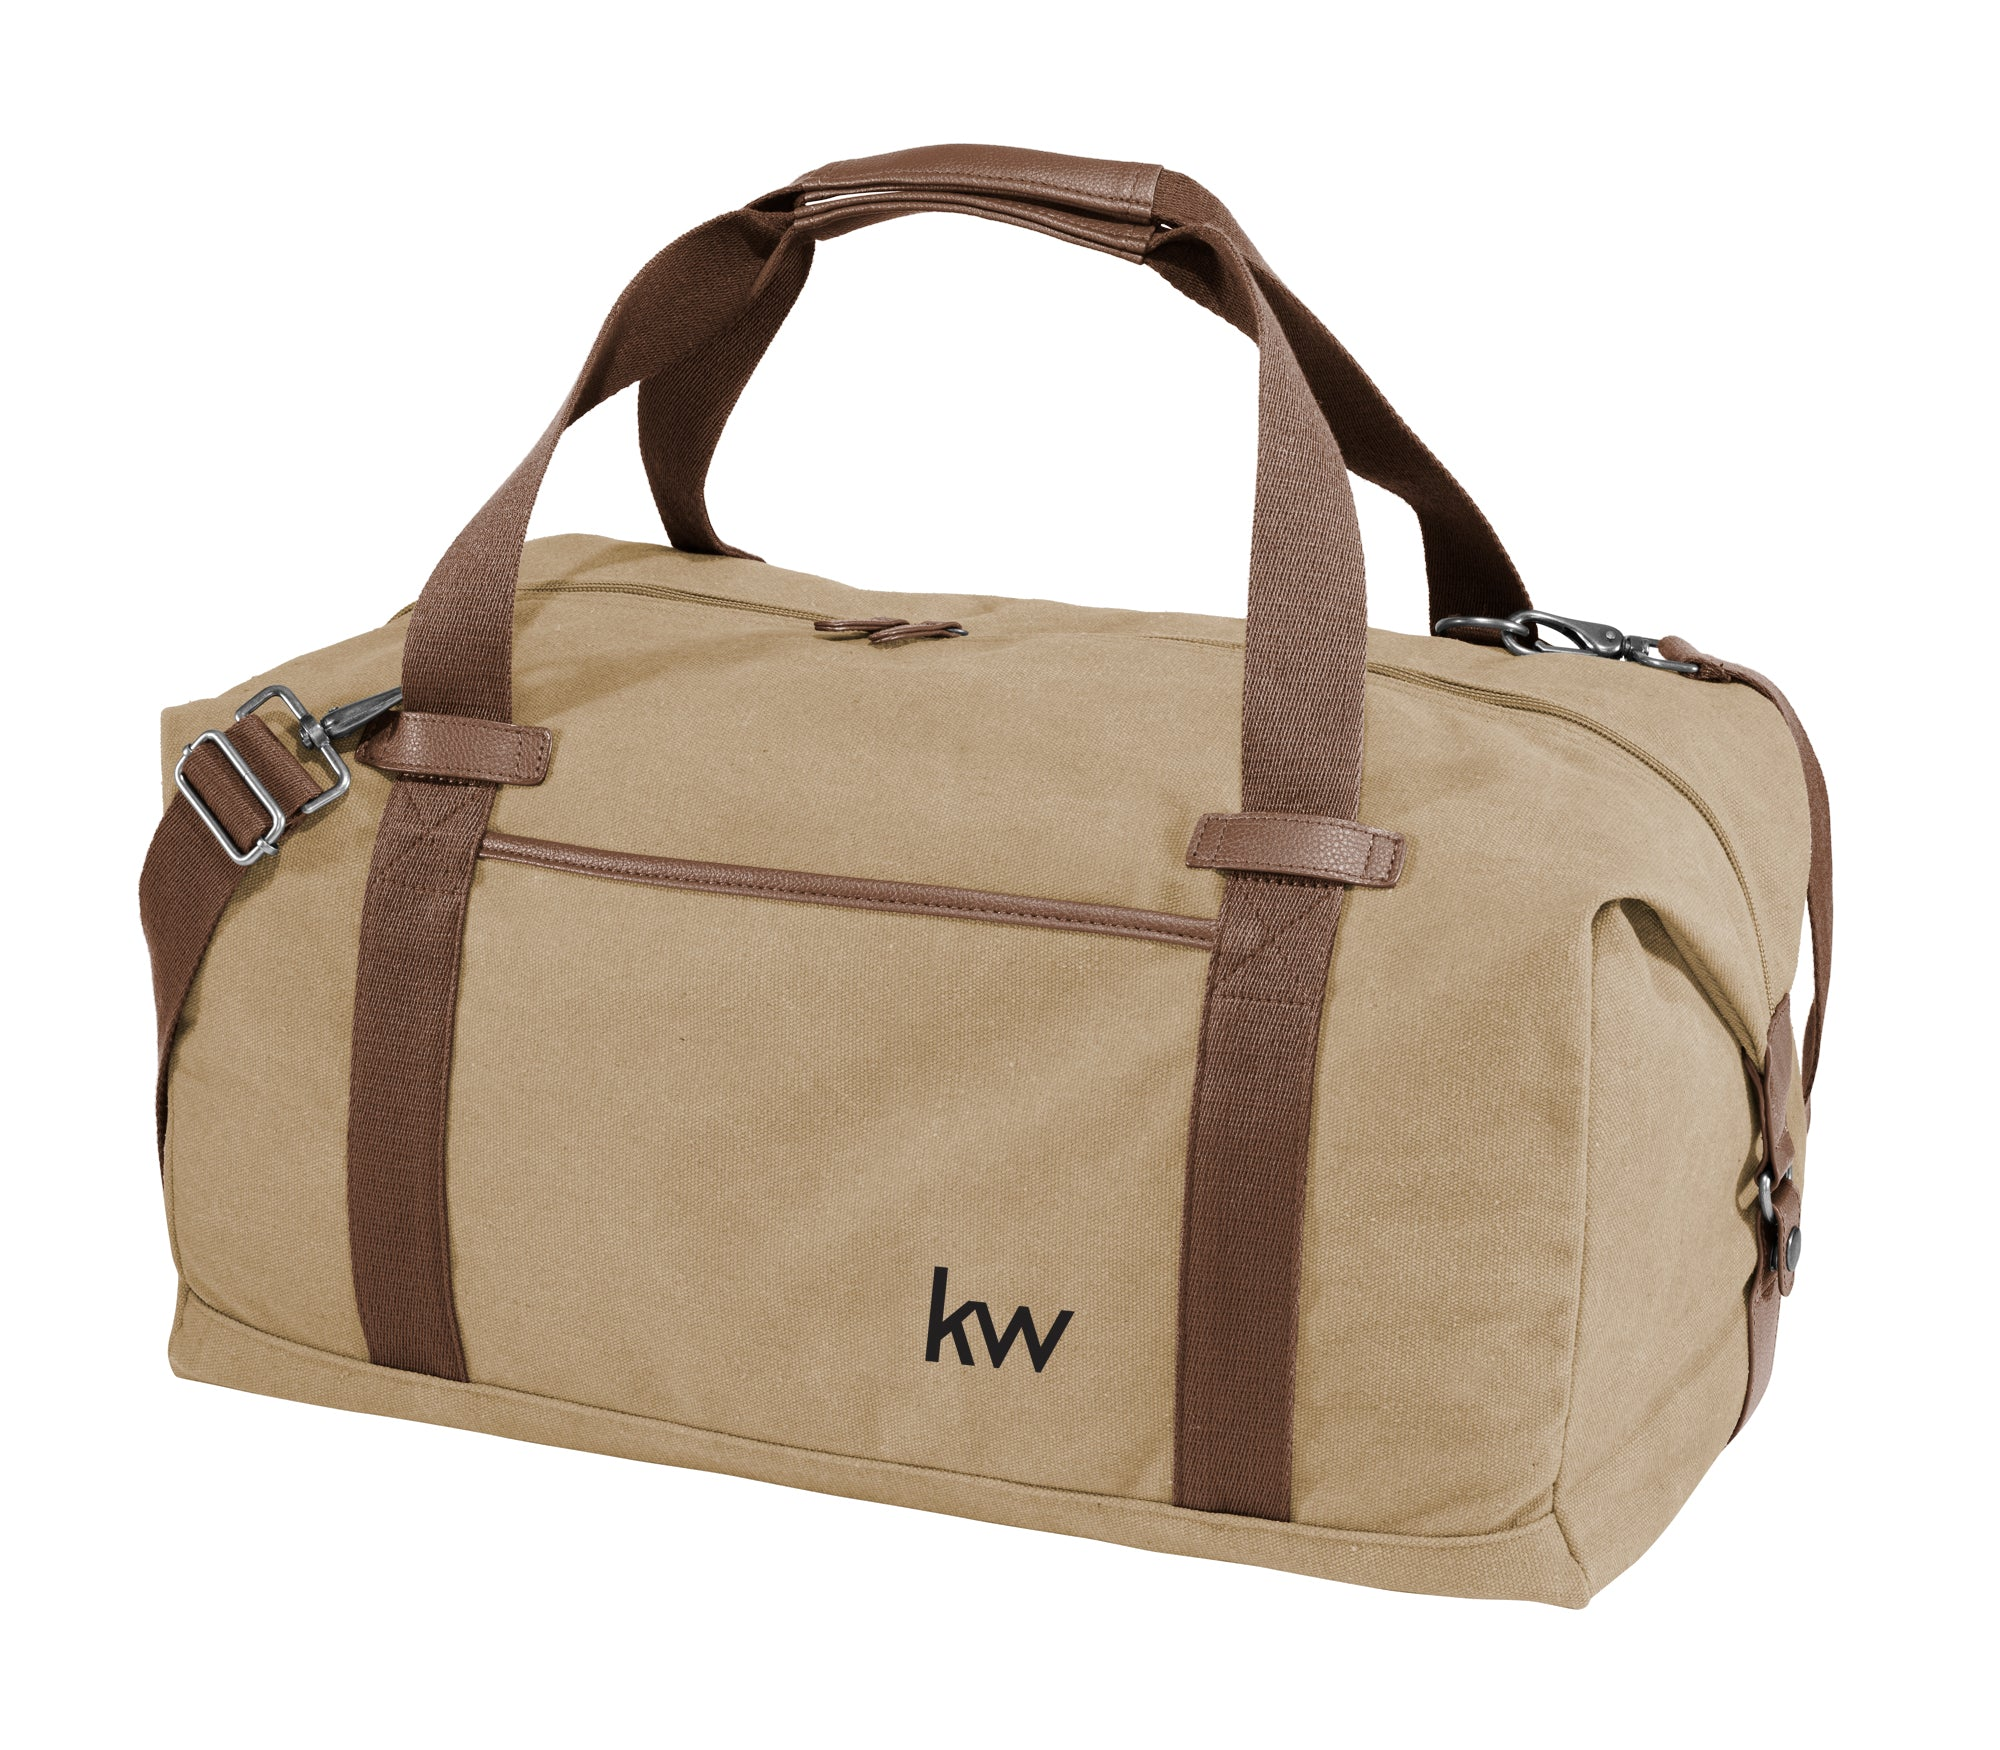 KW Canvas Duffel Bag